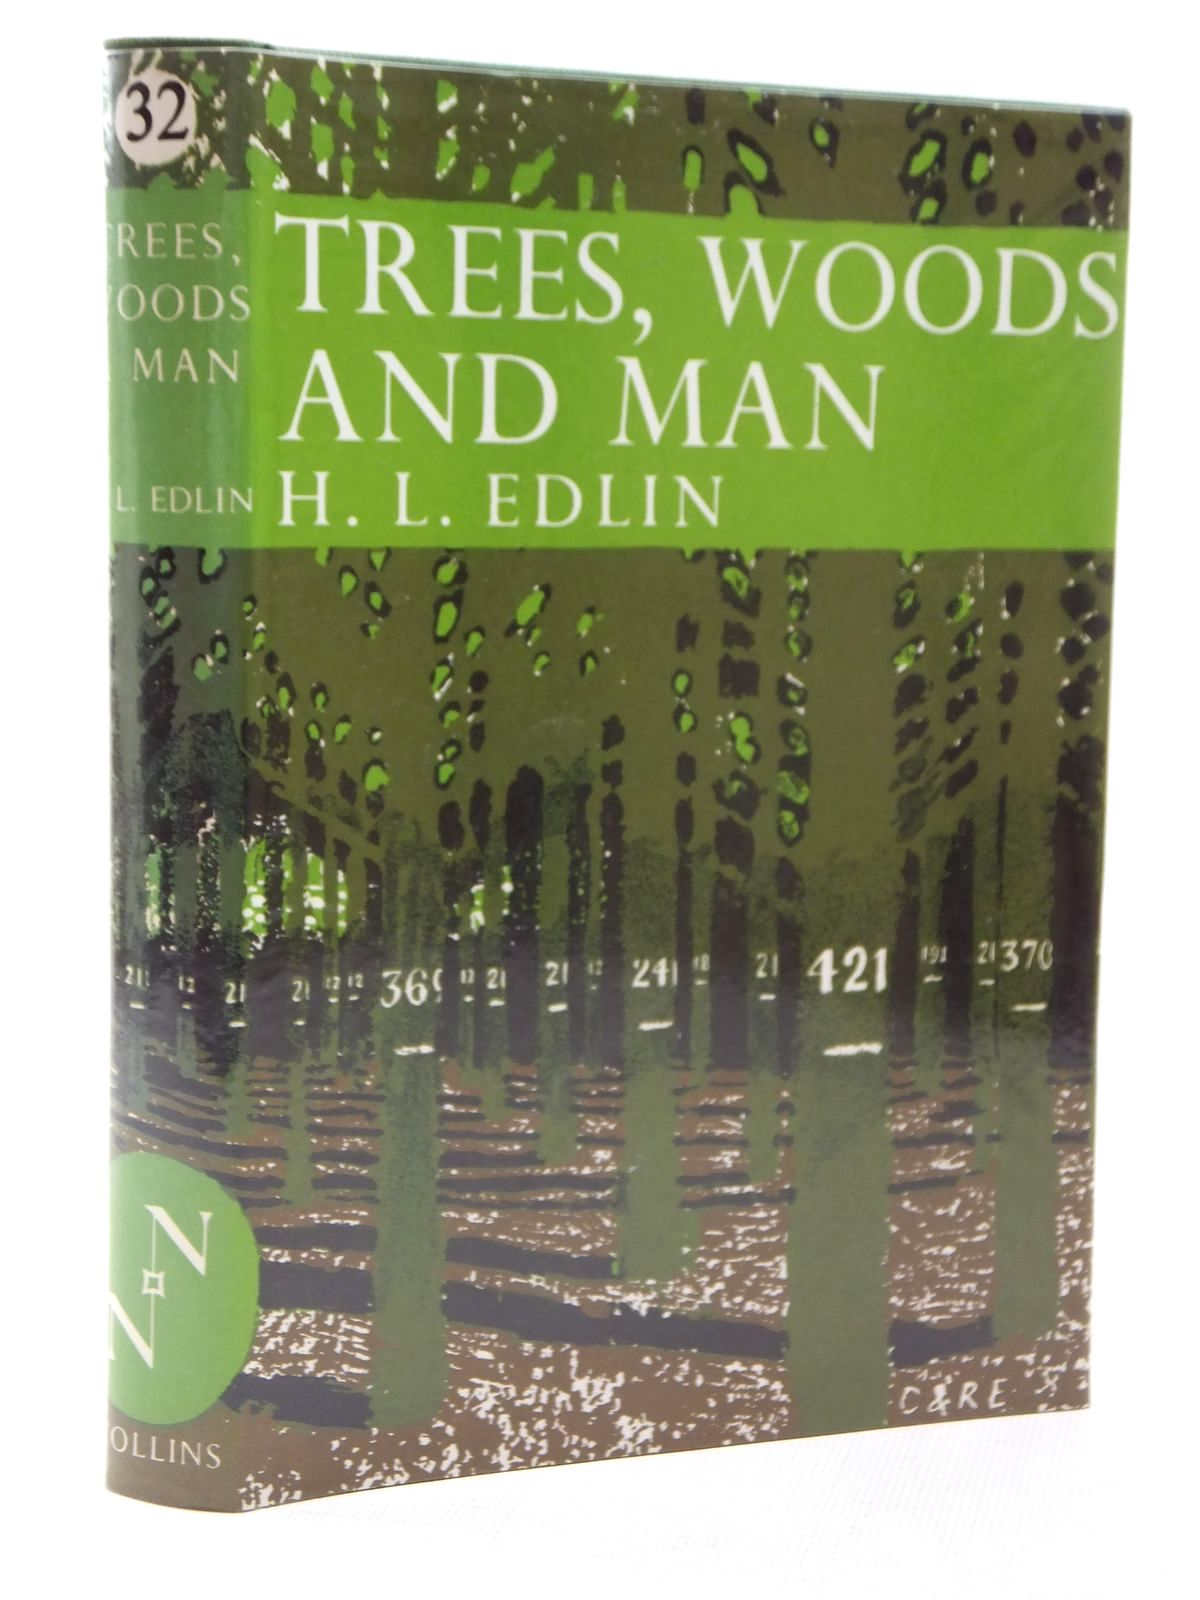 Photo of TREES WOODS AND MAN (NN 32) written by Edlin, Herbert L. published by Collins (STOCK CODE: 1609573)  for sale by Stella & Rose's Books